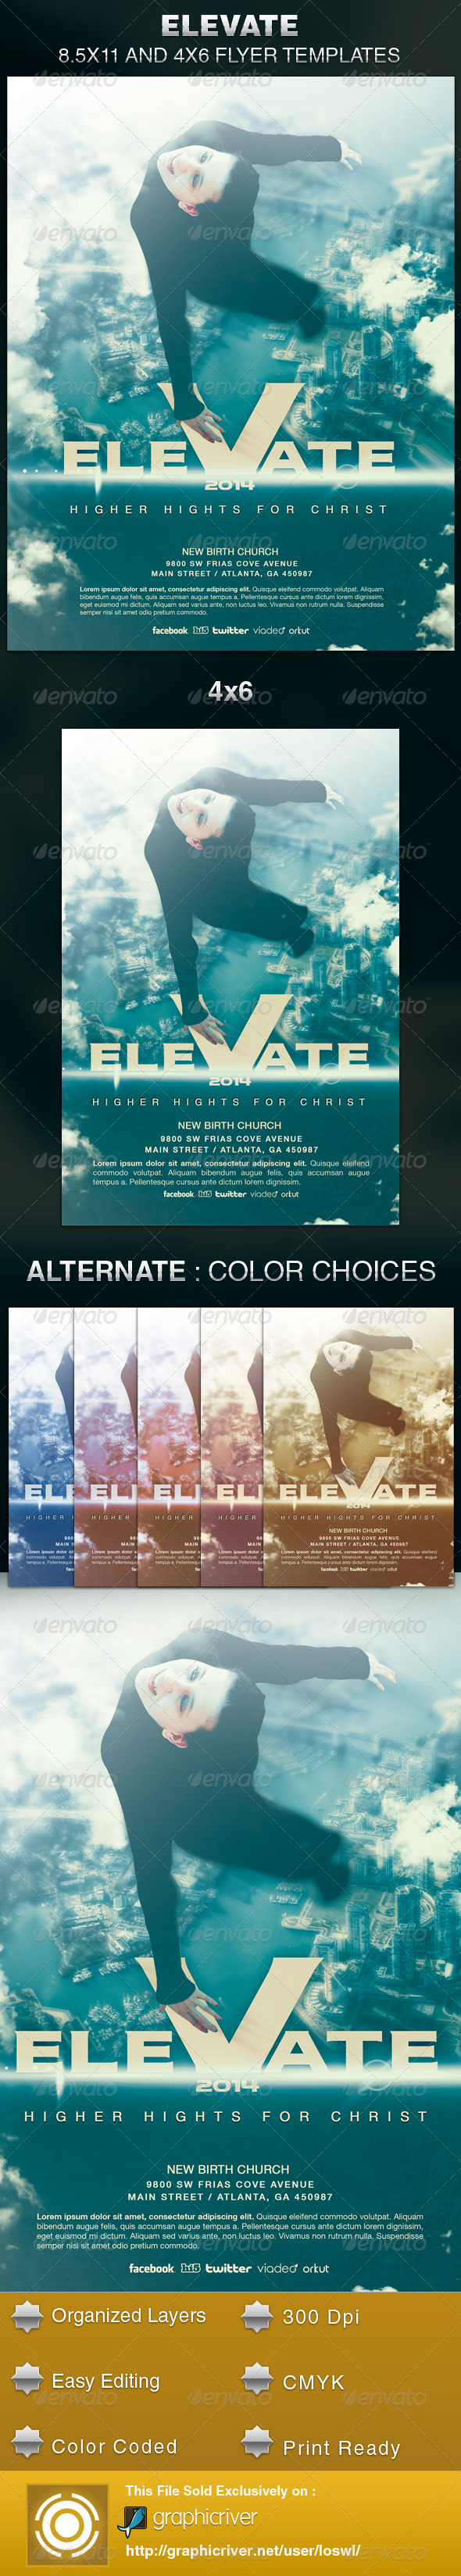 GraphicRiver Elevate Church Flyer Template 6126666